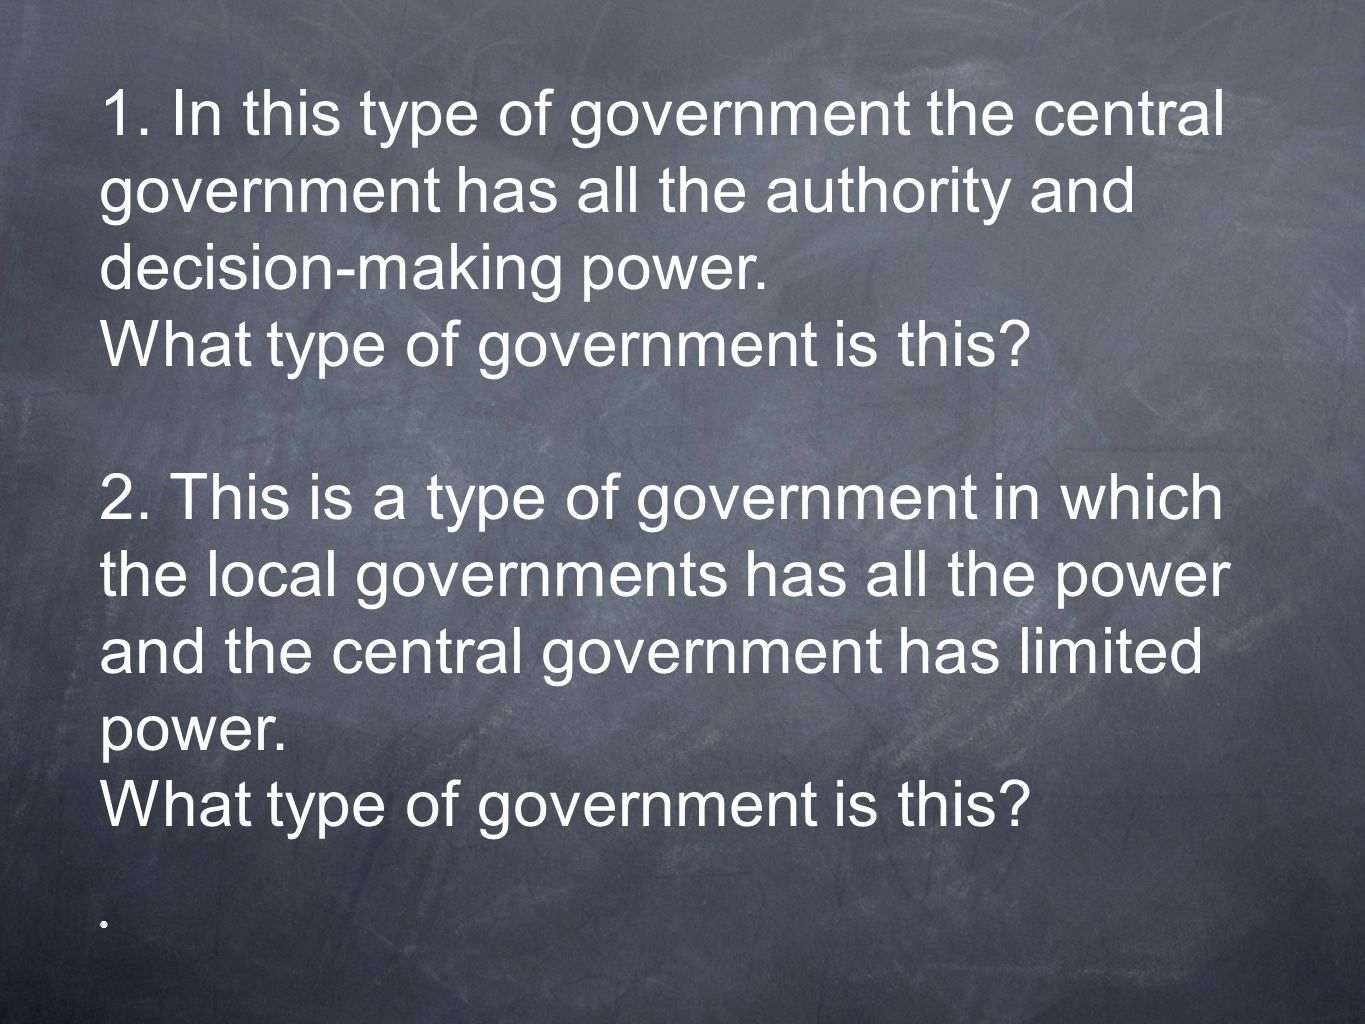 1. In this type of government the central government has all the authority and decision-making power.